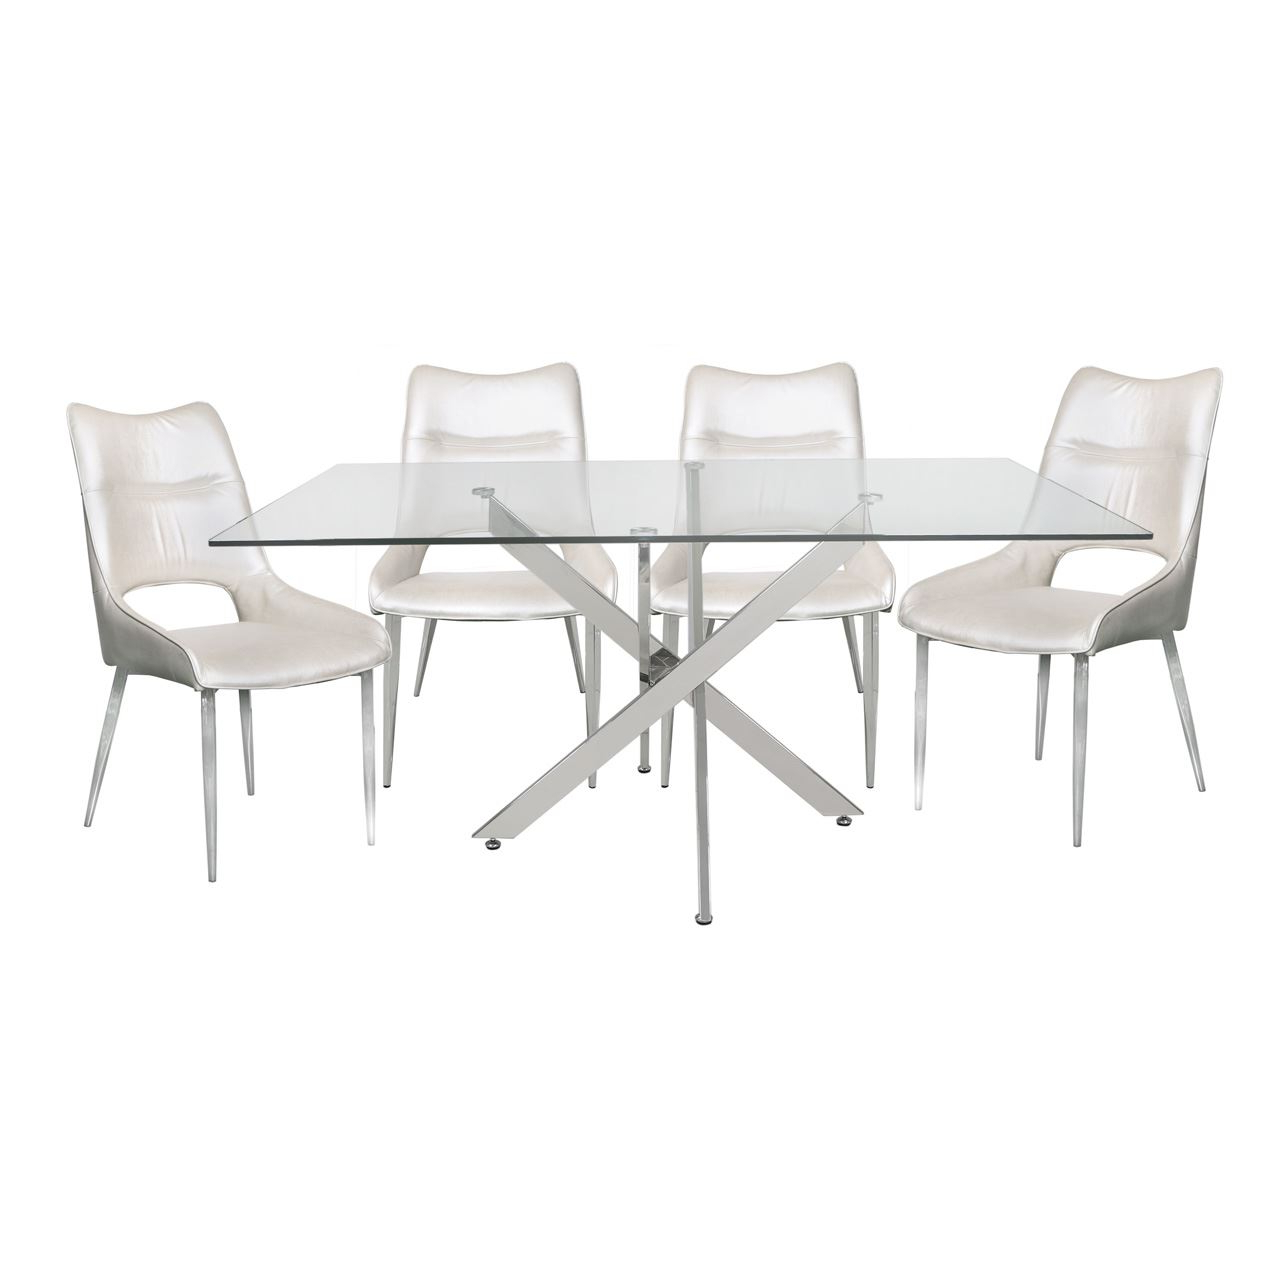 Details About Tempered Glass Steel Chrome Rectangular Dining Table And 4 White Adelaide Chairs Throughout 2020 Chrome Dining Tables With Tempered Glass (View 1 of 25)